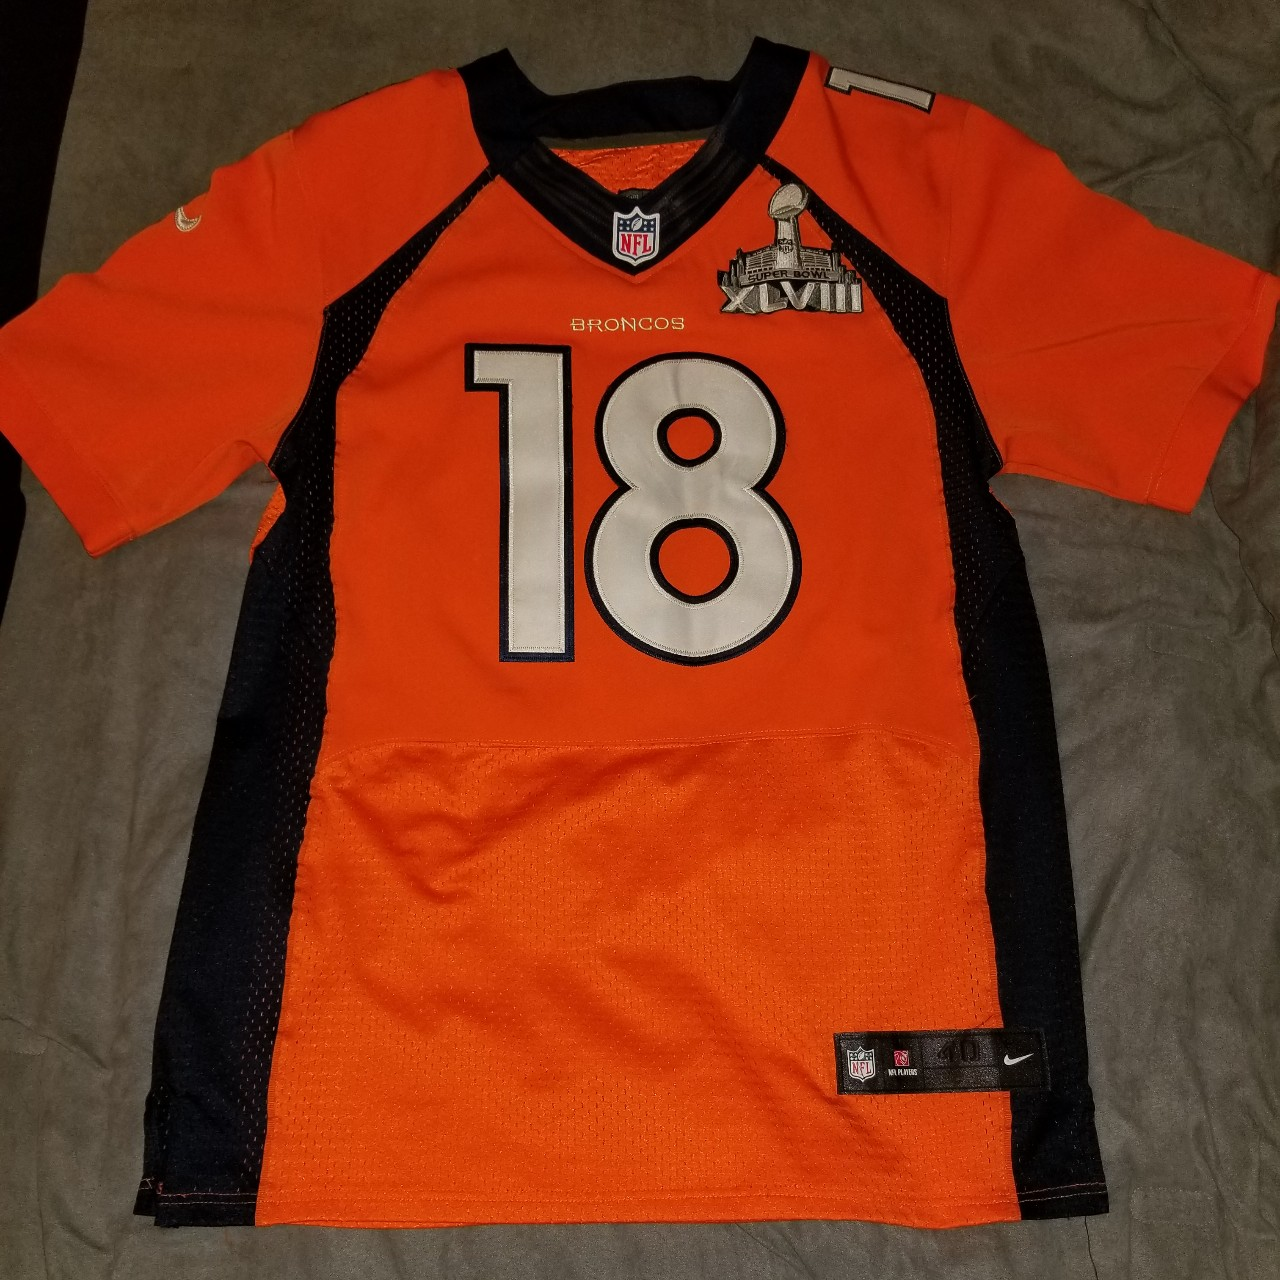 factory authentic 959b1 1dca7 Nike Peyton Manning Jersey Superbowl Edition XLVIII... - Depop